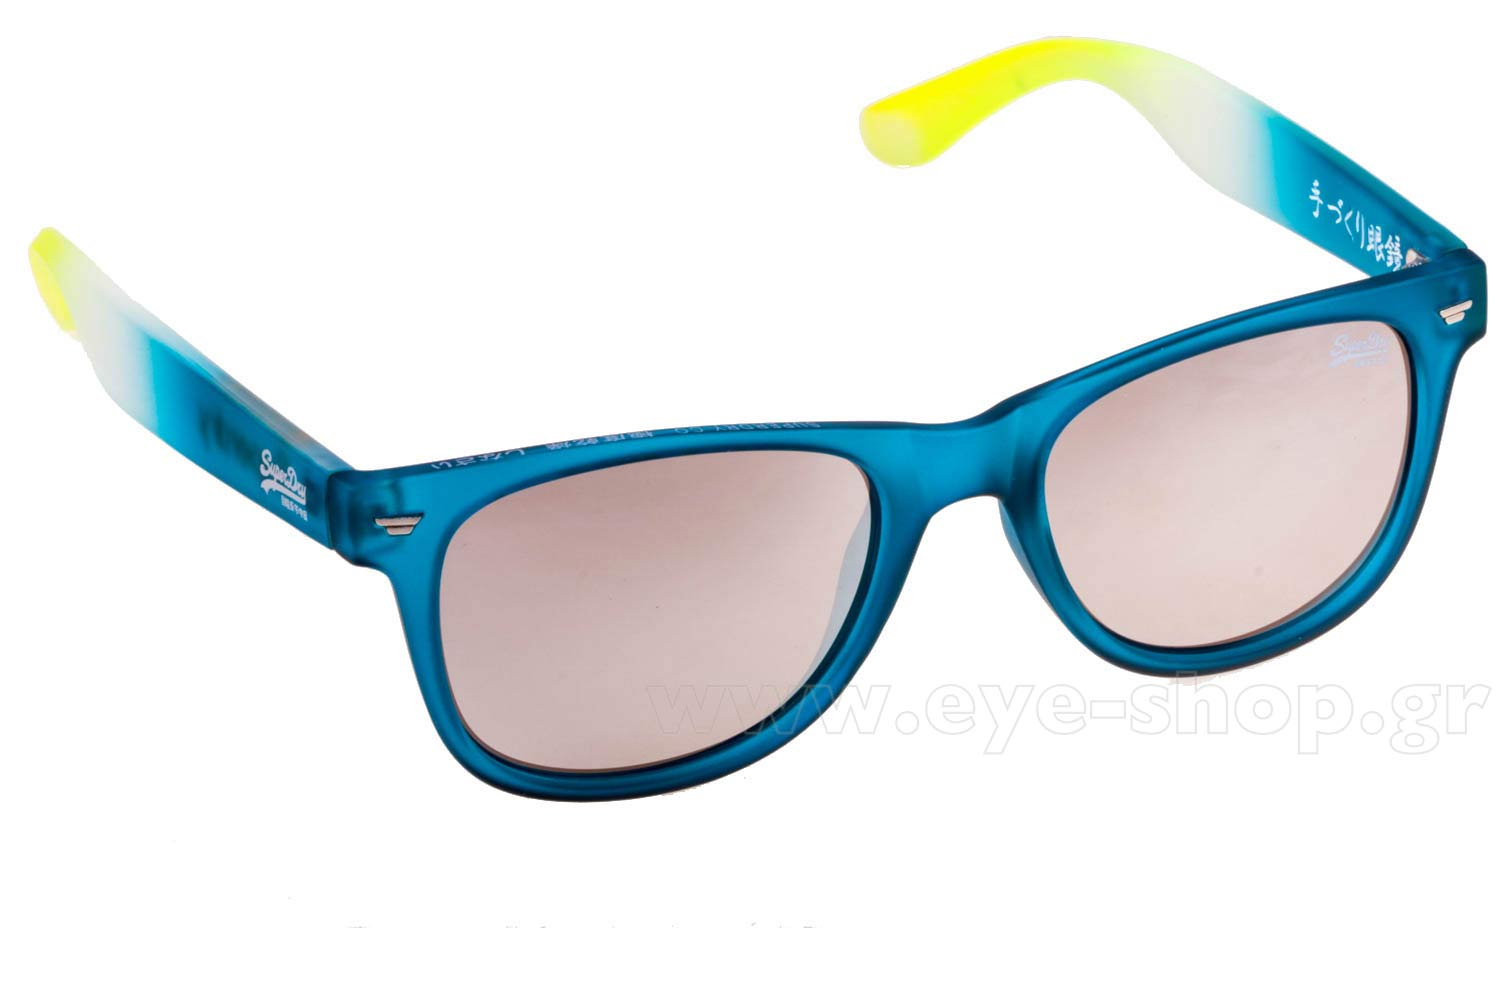 Superdry Superfarer Sunglasses Teal Yellow Latest Collection Genuine /& Brand New